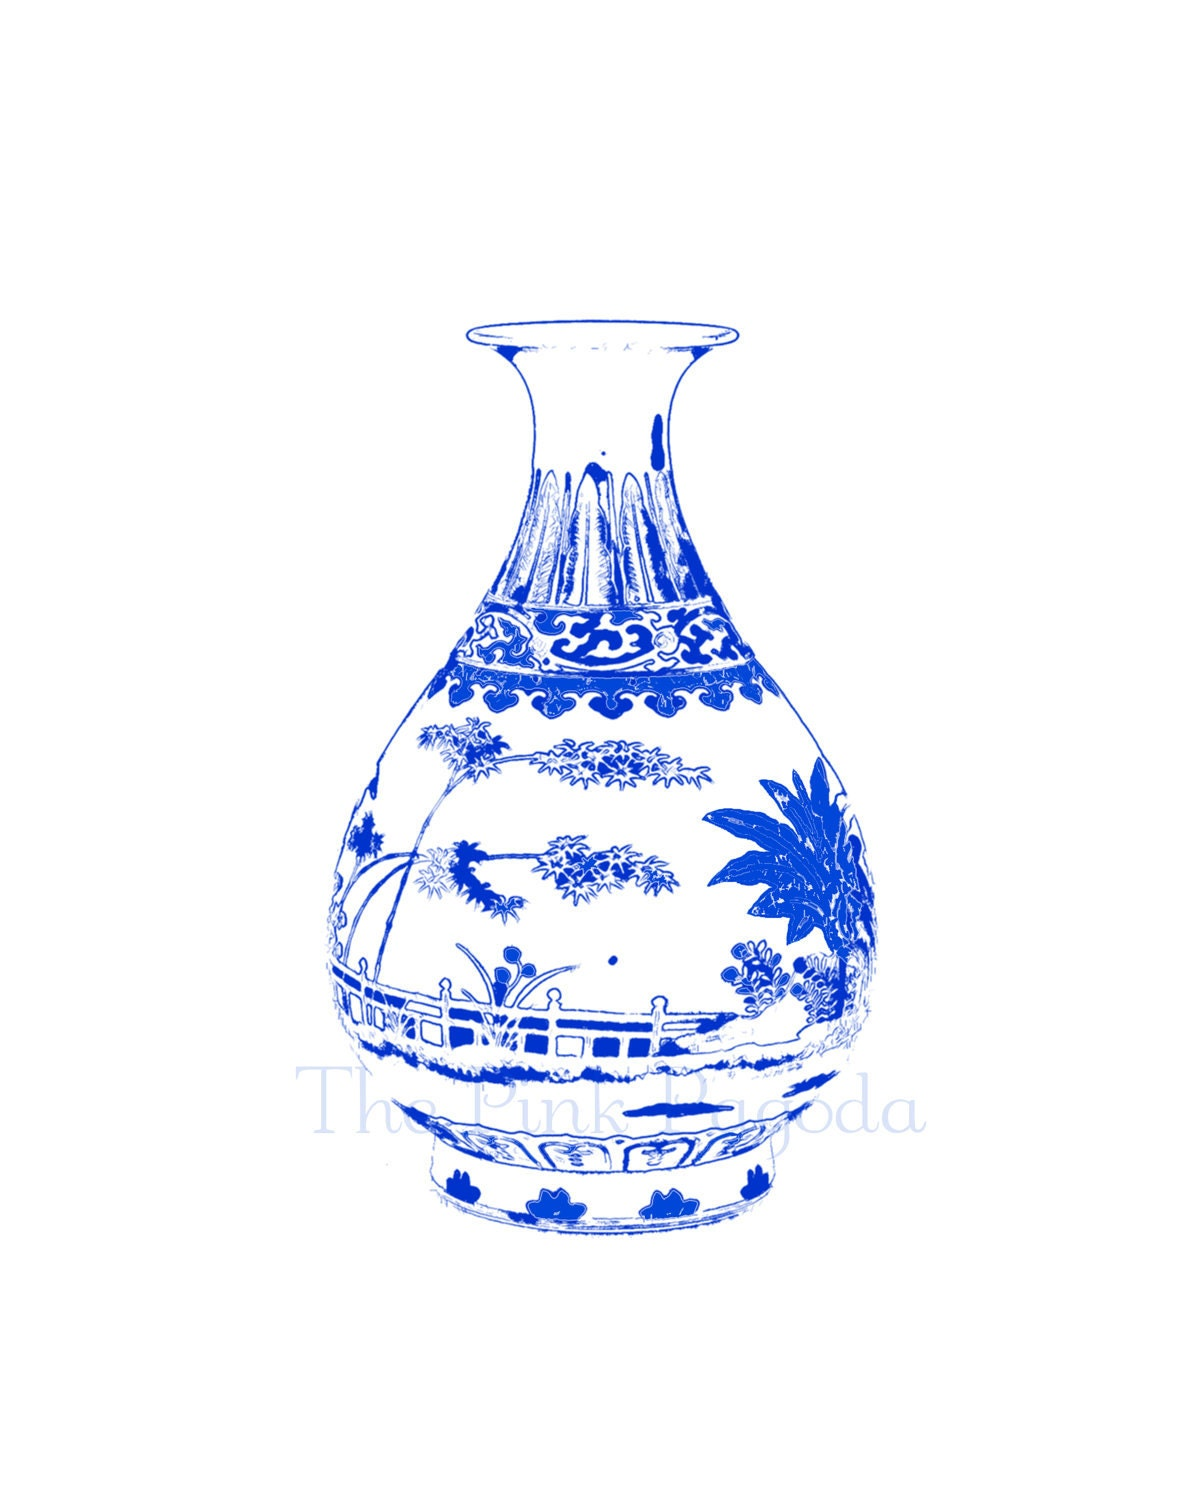 Blue and White Chinese Vase on White 8x10 Giclee - thepinkpagoda